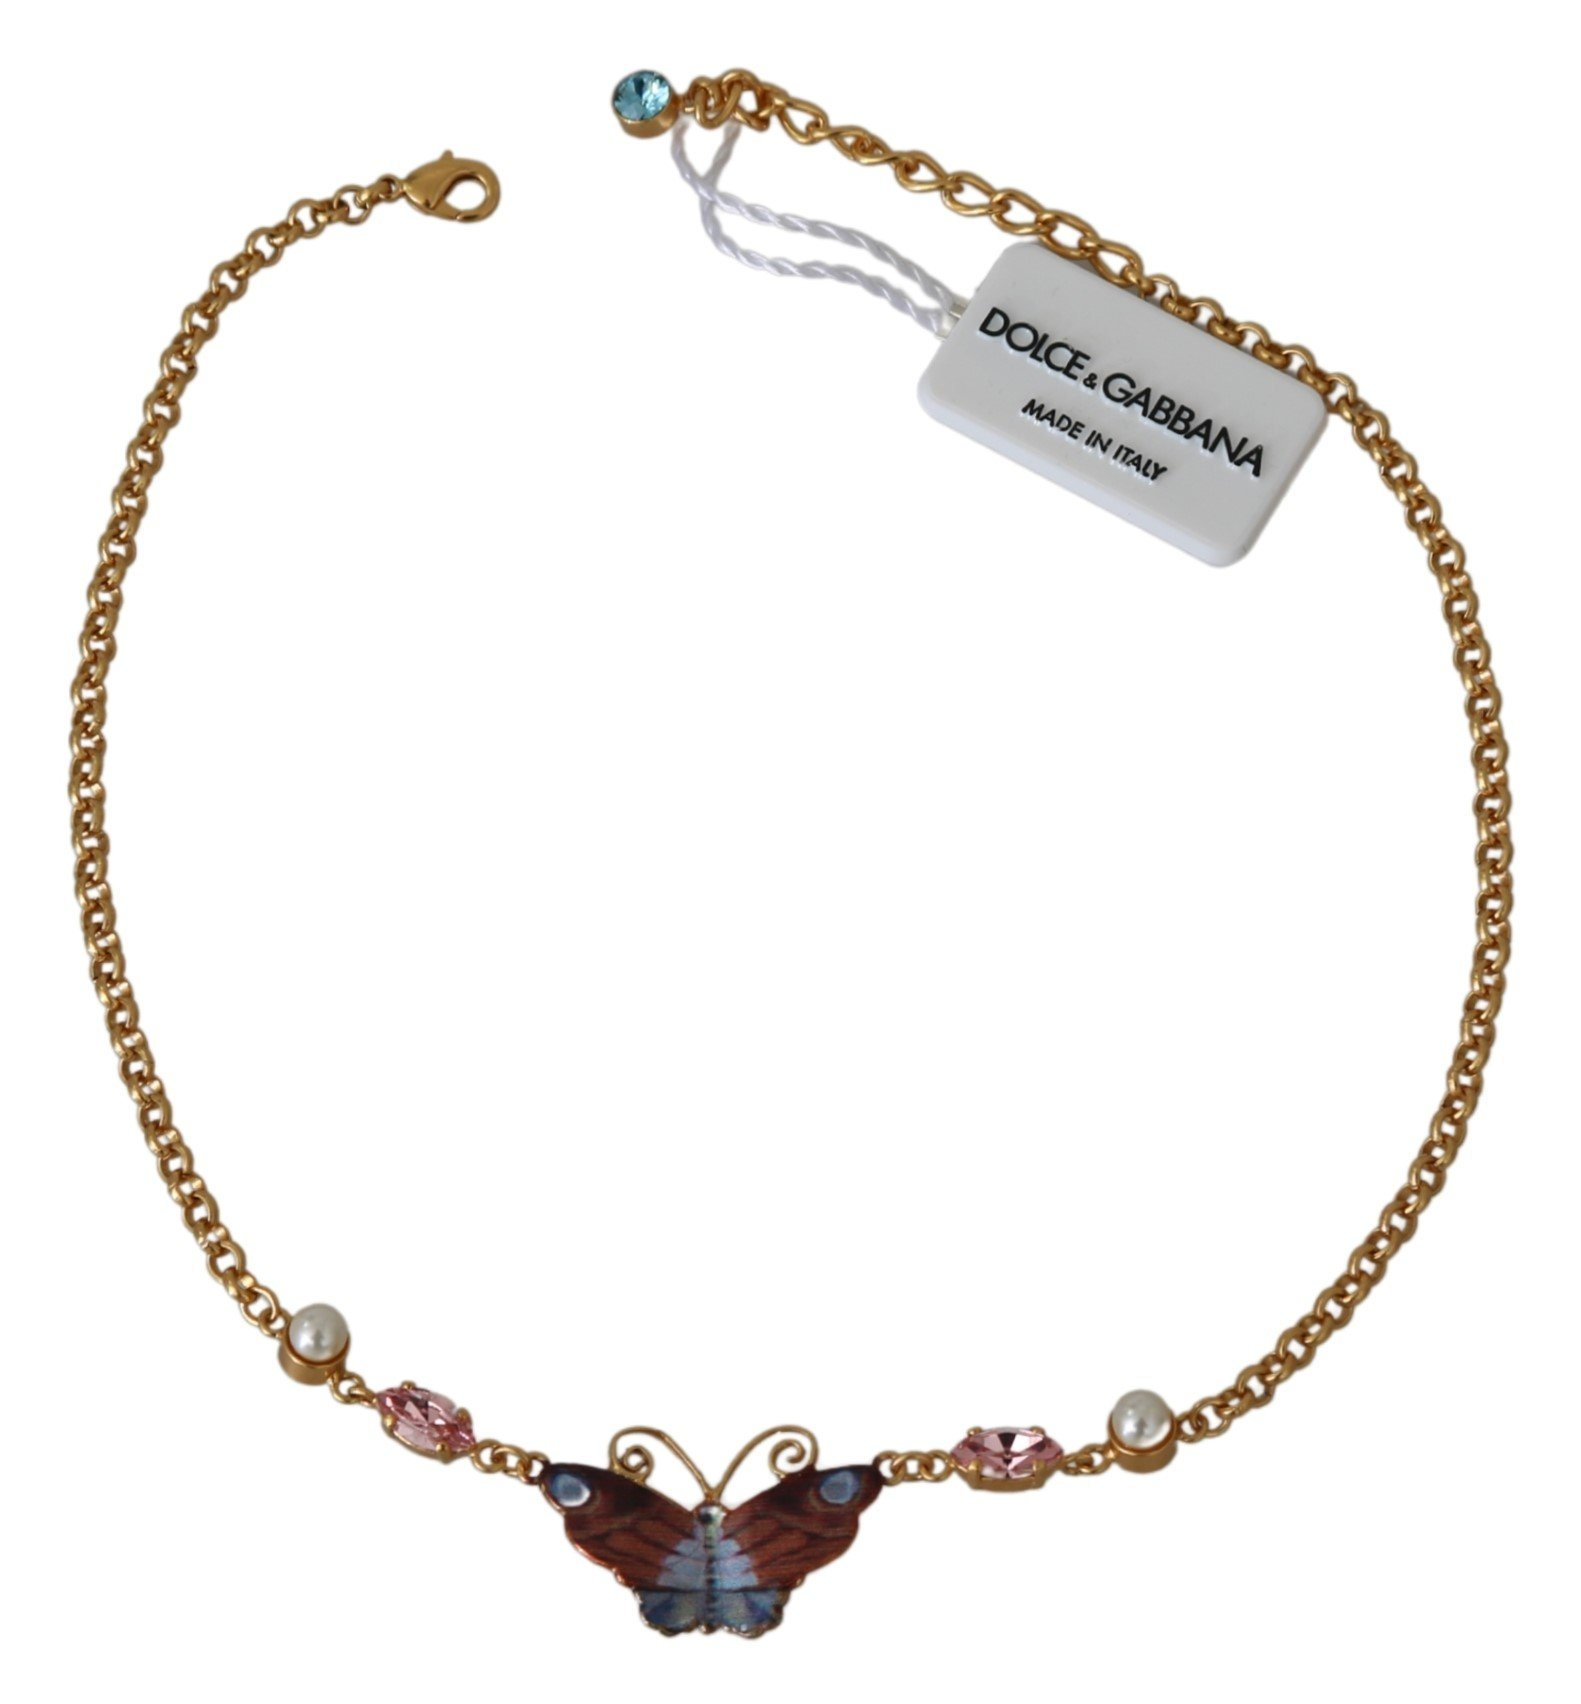 Dolce & Gabbana Women's Crystal Floral Butterfly Chain Necklace Gold SMY7149